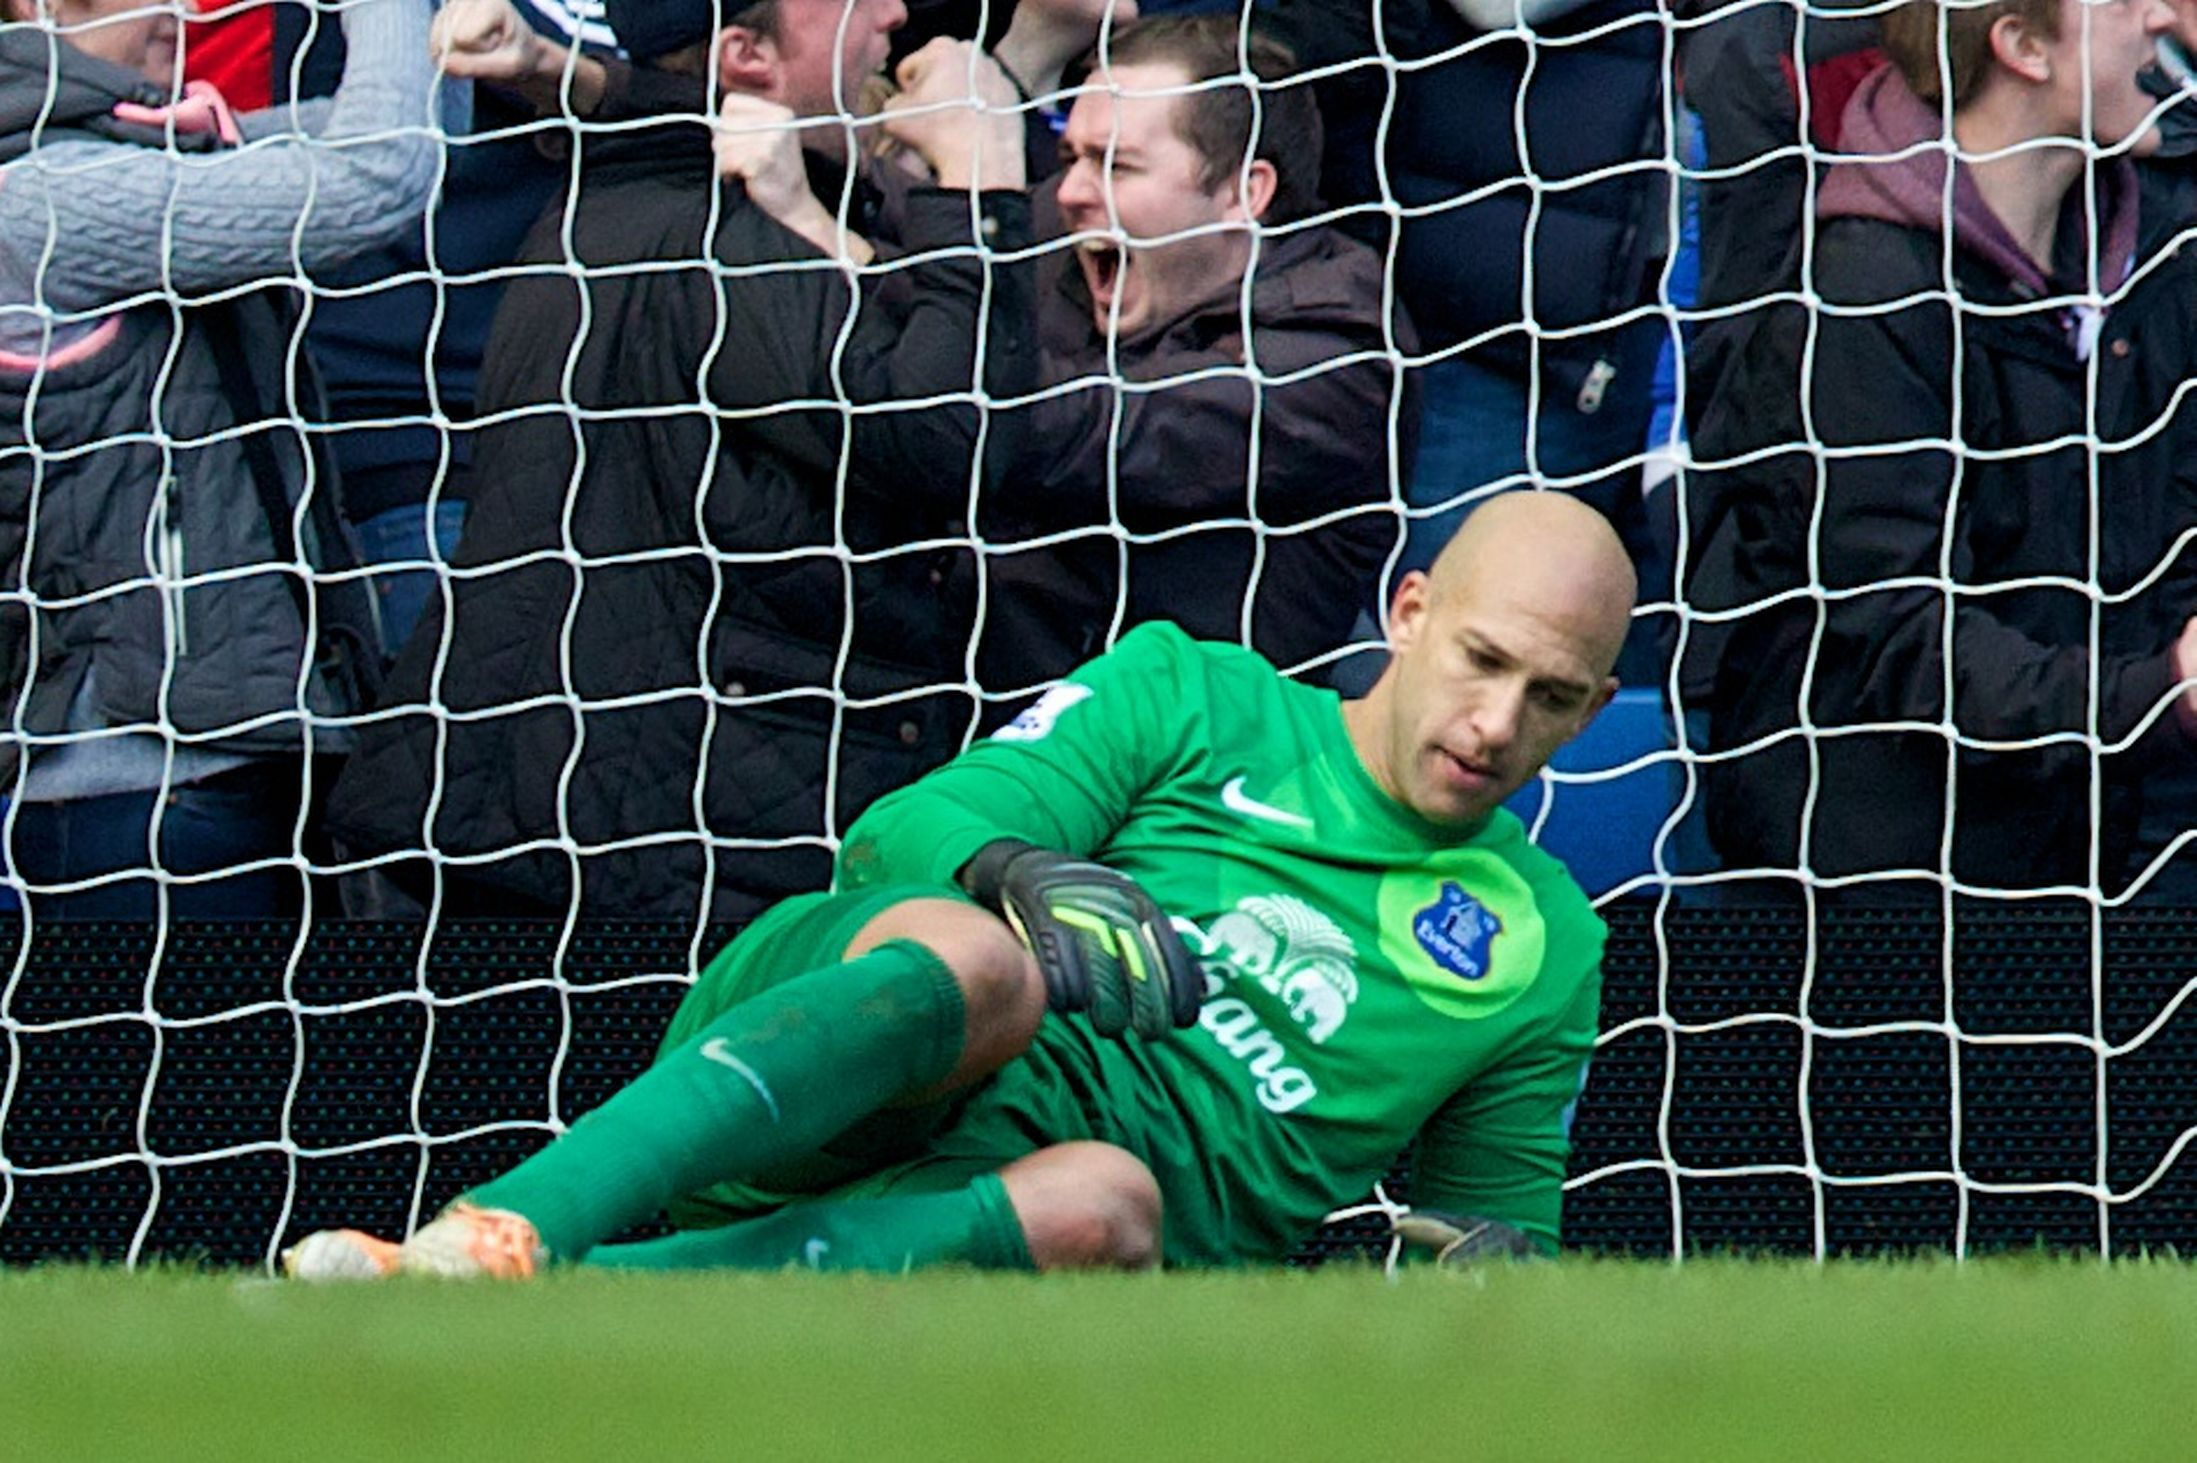 Chelsea 1 Everton 0: Blues sickener after last-gasp own ...